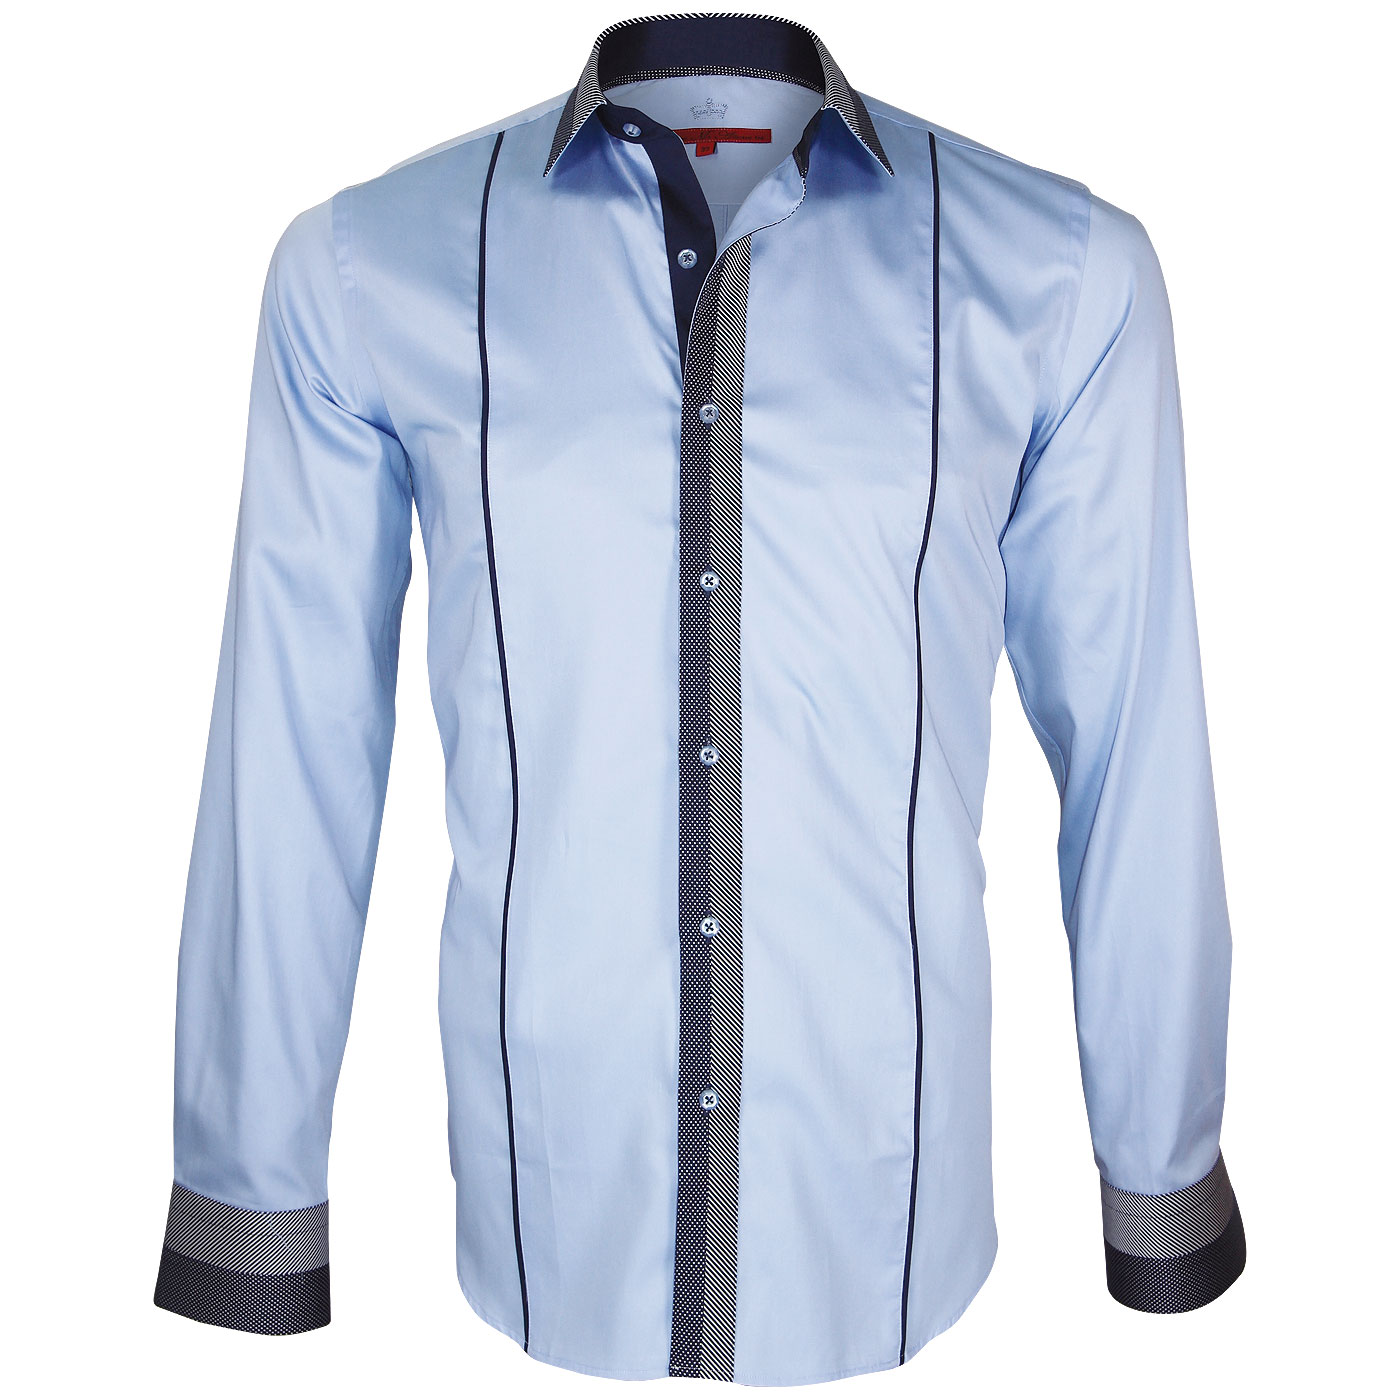 Man's shirts: Advices for a successful look